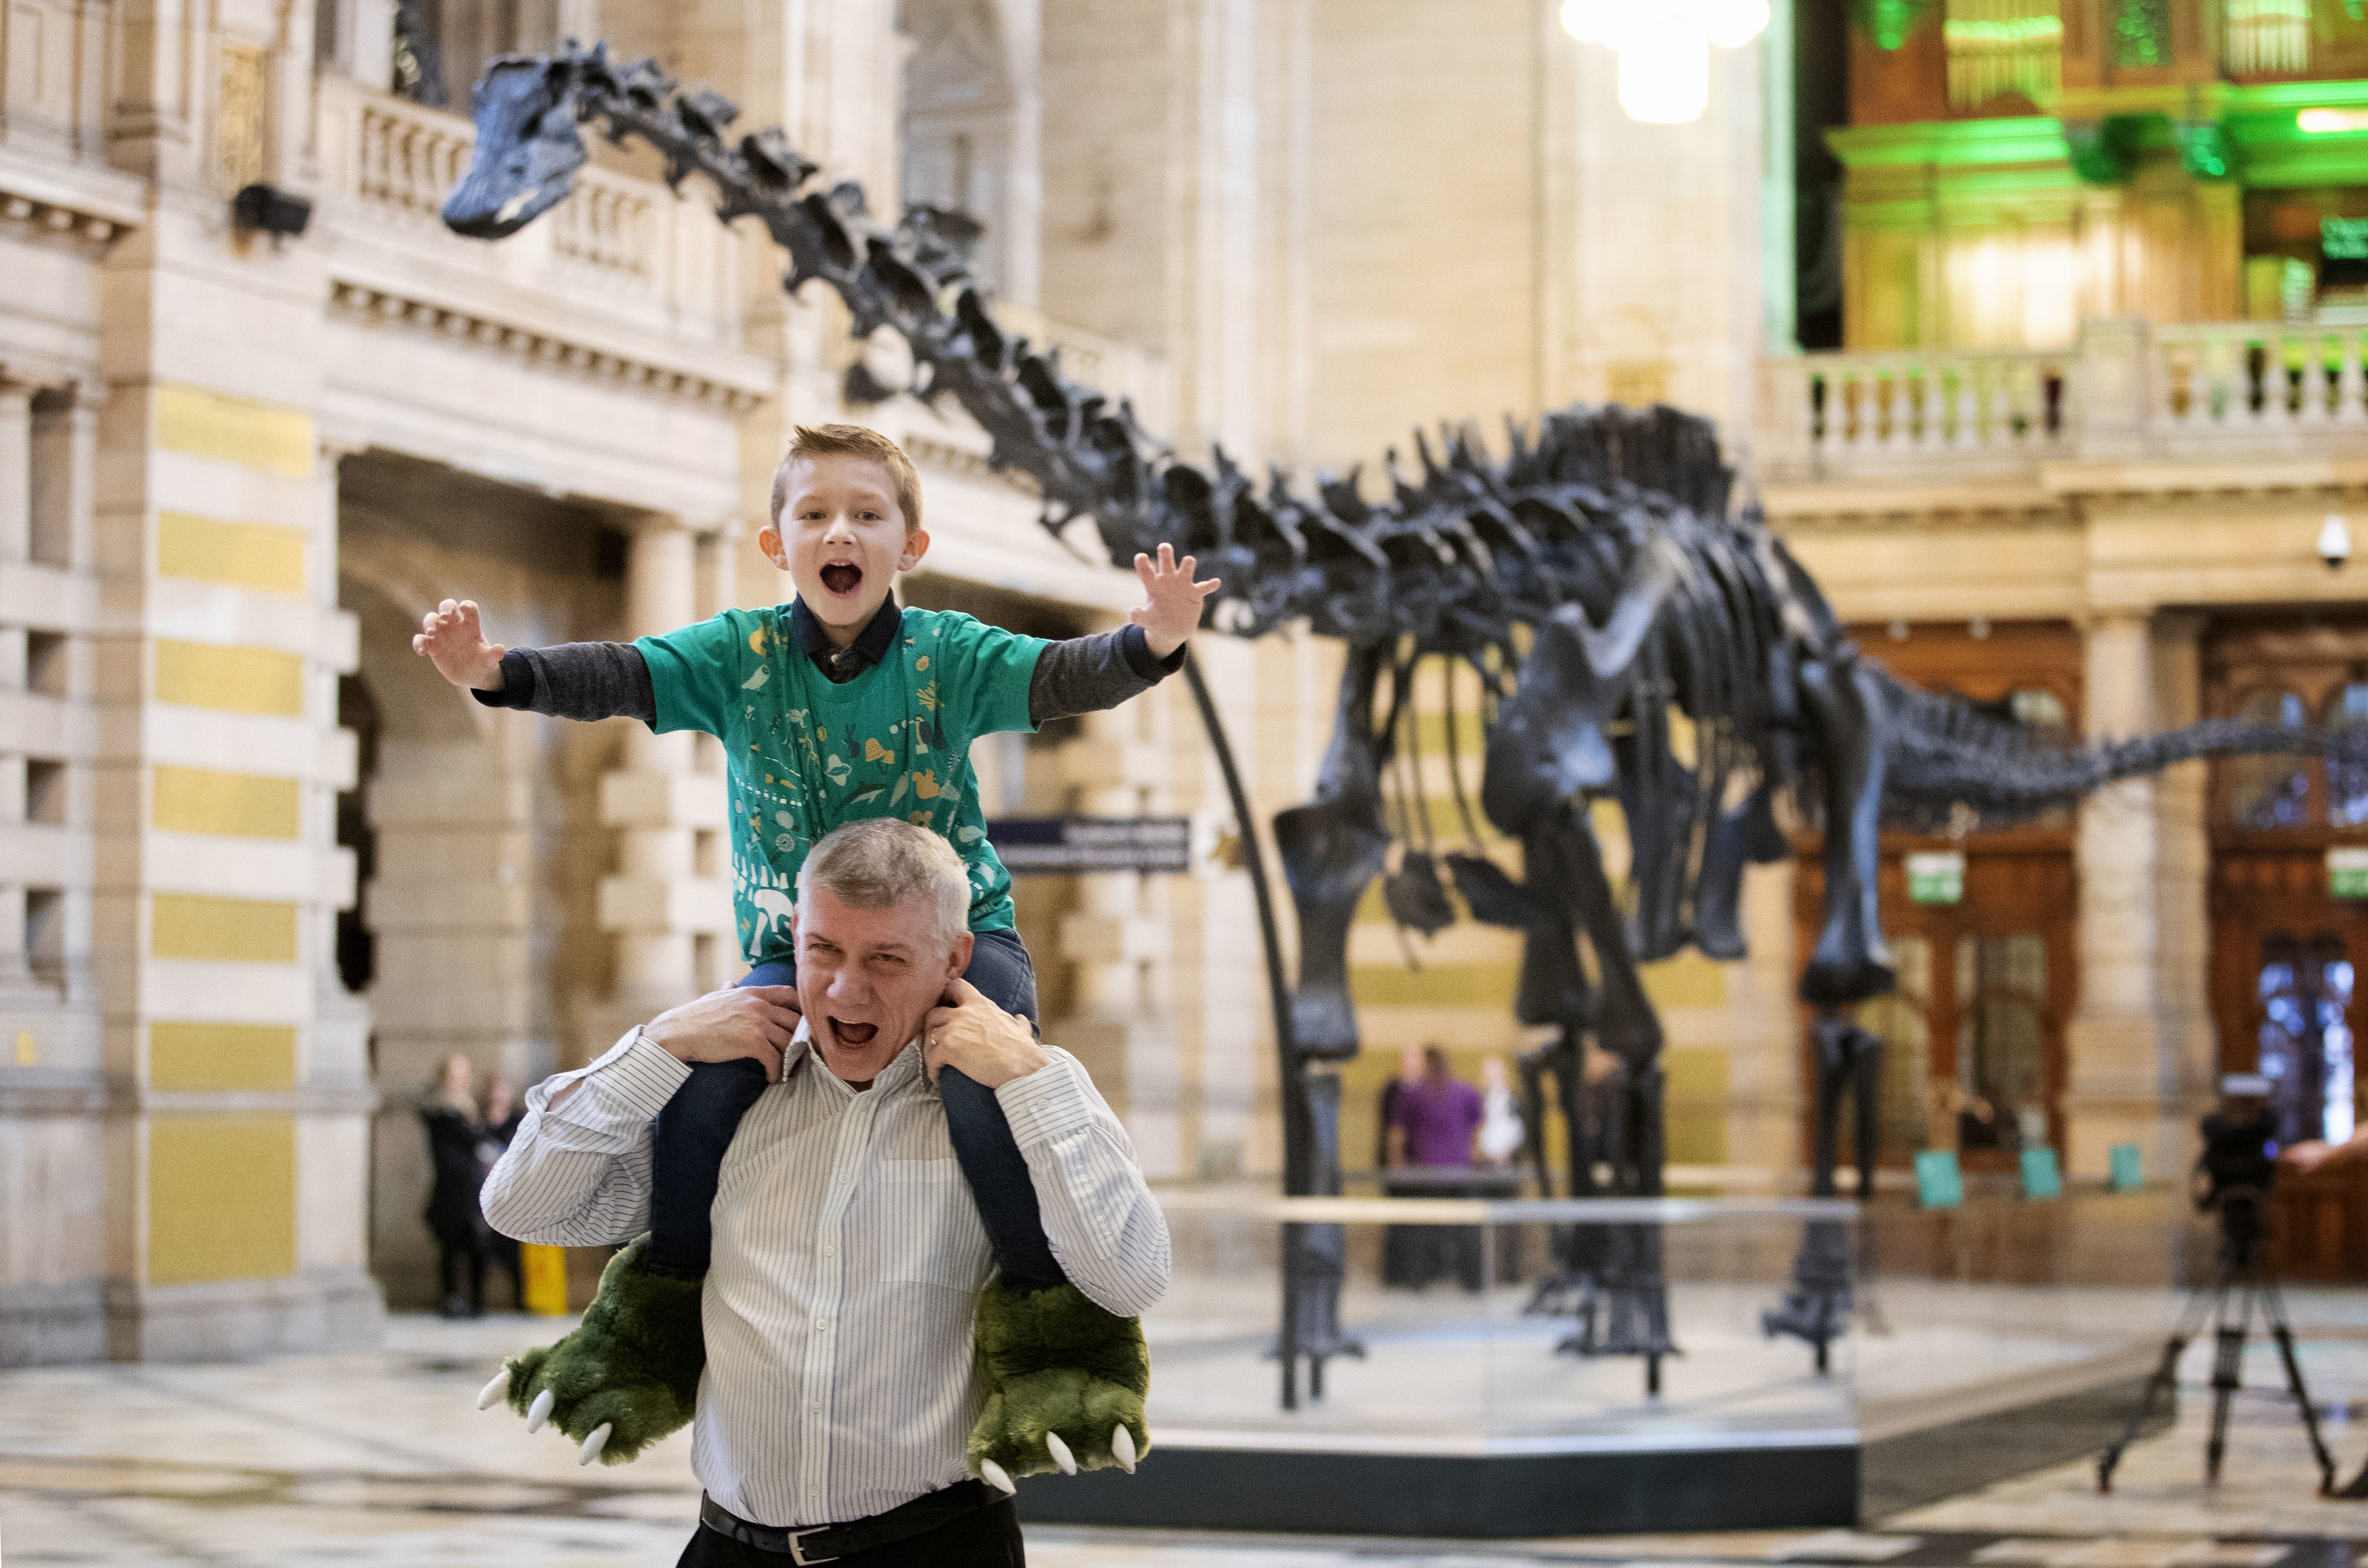 Oliver Cudden, 6, from Glasgow, with his father Andrew Cudden, was one of the first people to see Dippy, the Natural History Museum London's famous diplodocus skeleton, as it was unveiled at Kelvingrove Art Gallery and Museum in Glasgow.